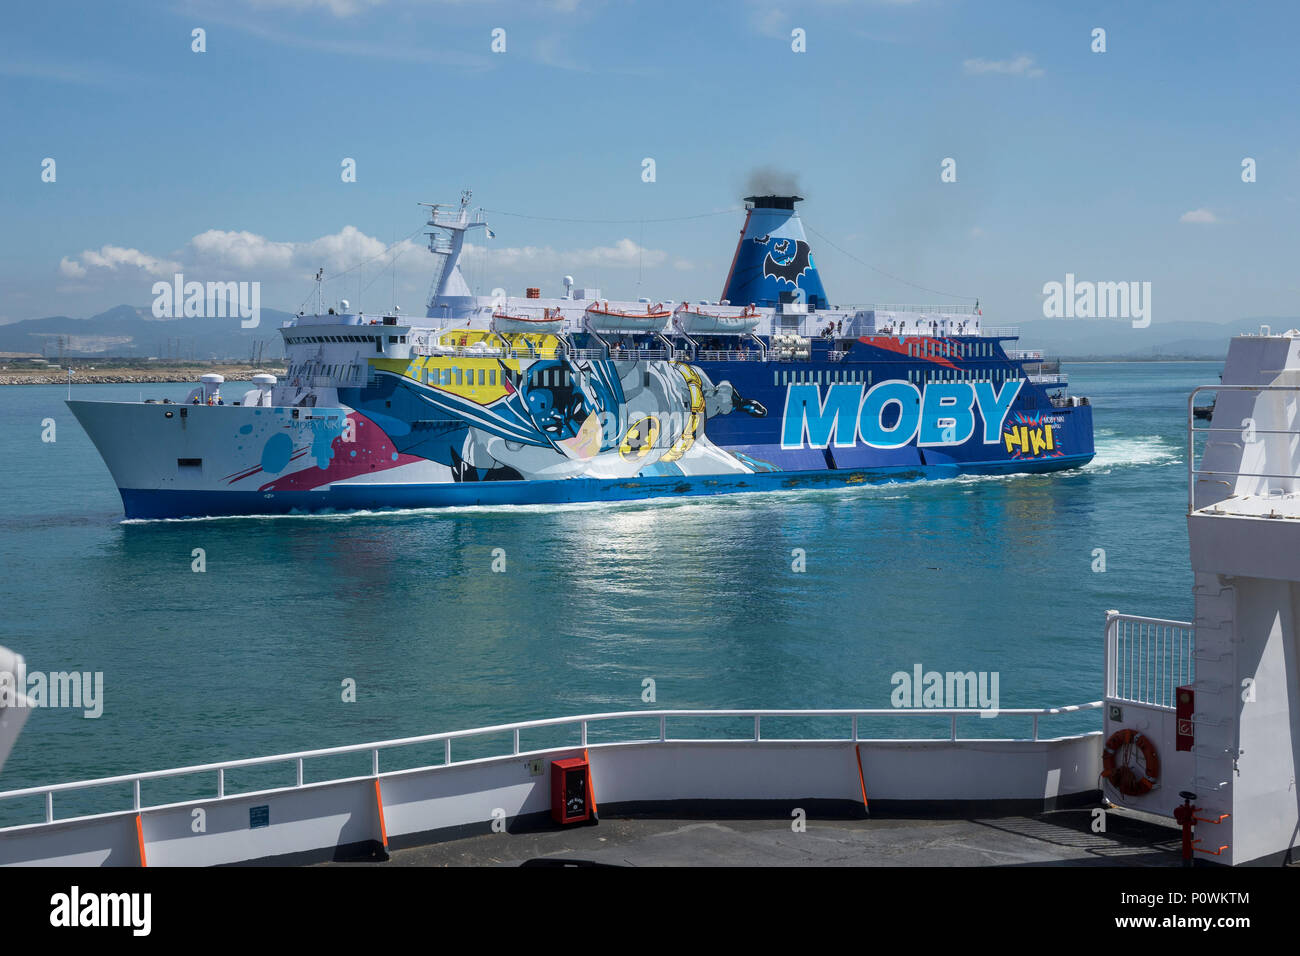 Livorno Olbia Ferry Moby Ferry Stock Photos And Moby Ferry Stock Images Alamy